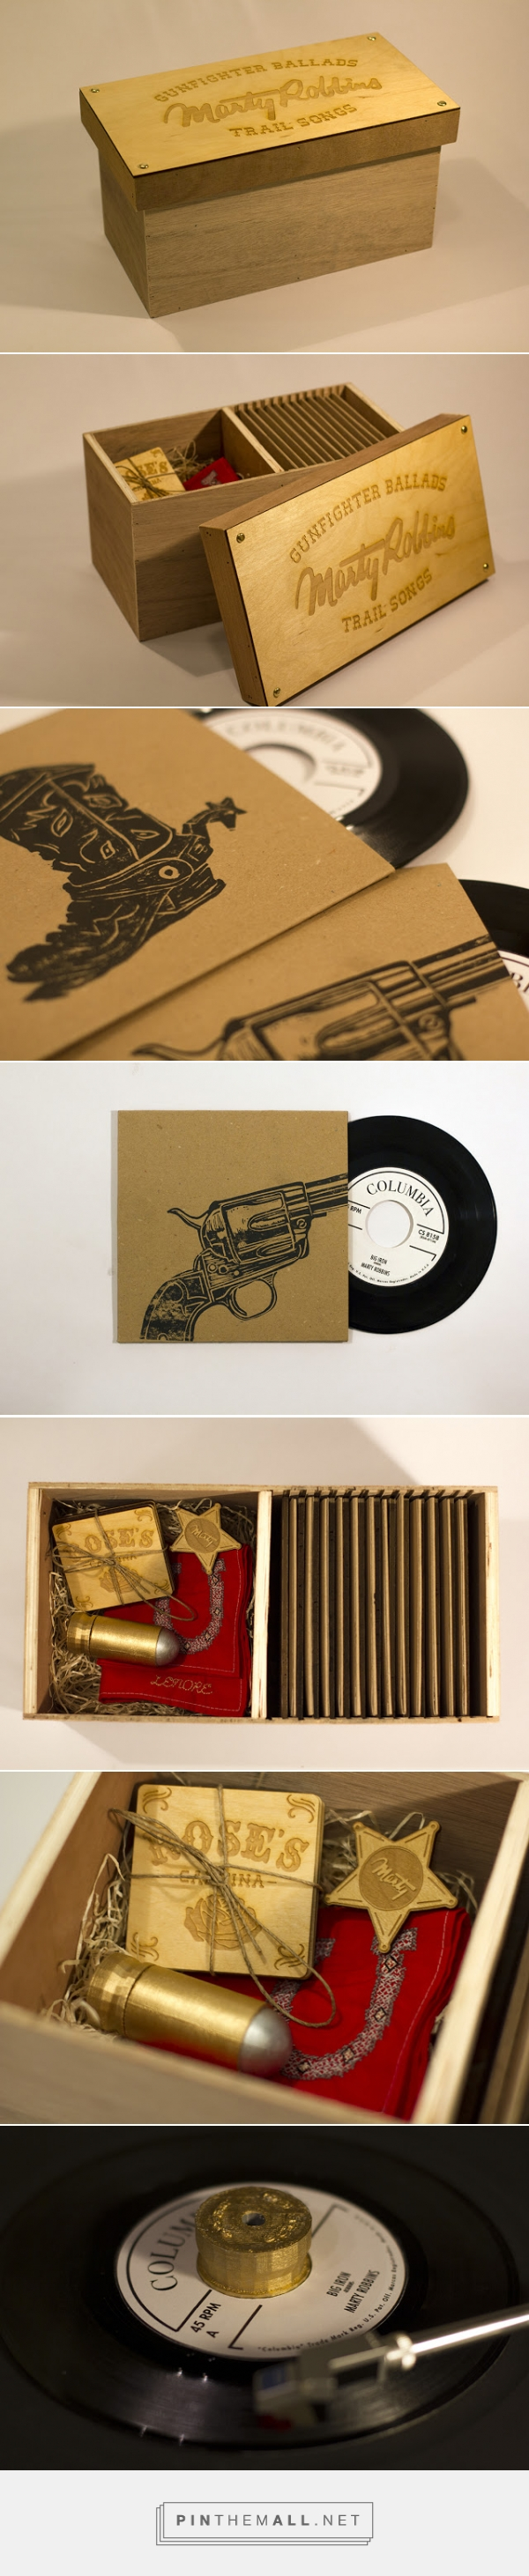 Marty Robbins - Gunfighter Ballads Boxset student #concept #packaging designed by David Meaney - http://www.packagingoftheworld.com/2015/04/marty-robbins-gunfighter-ballads-boxset.html